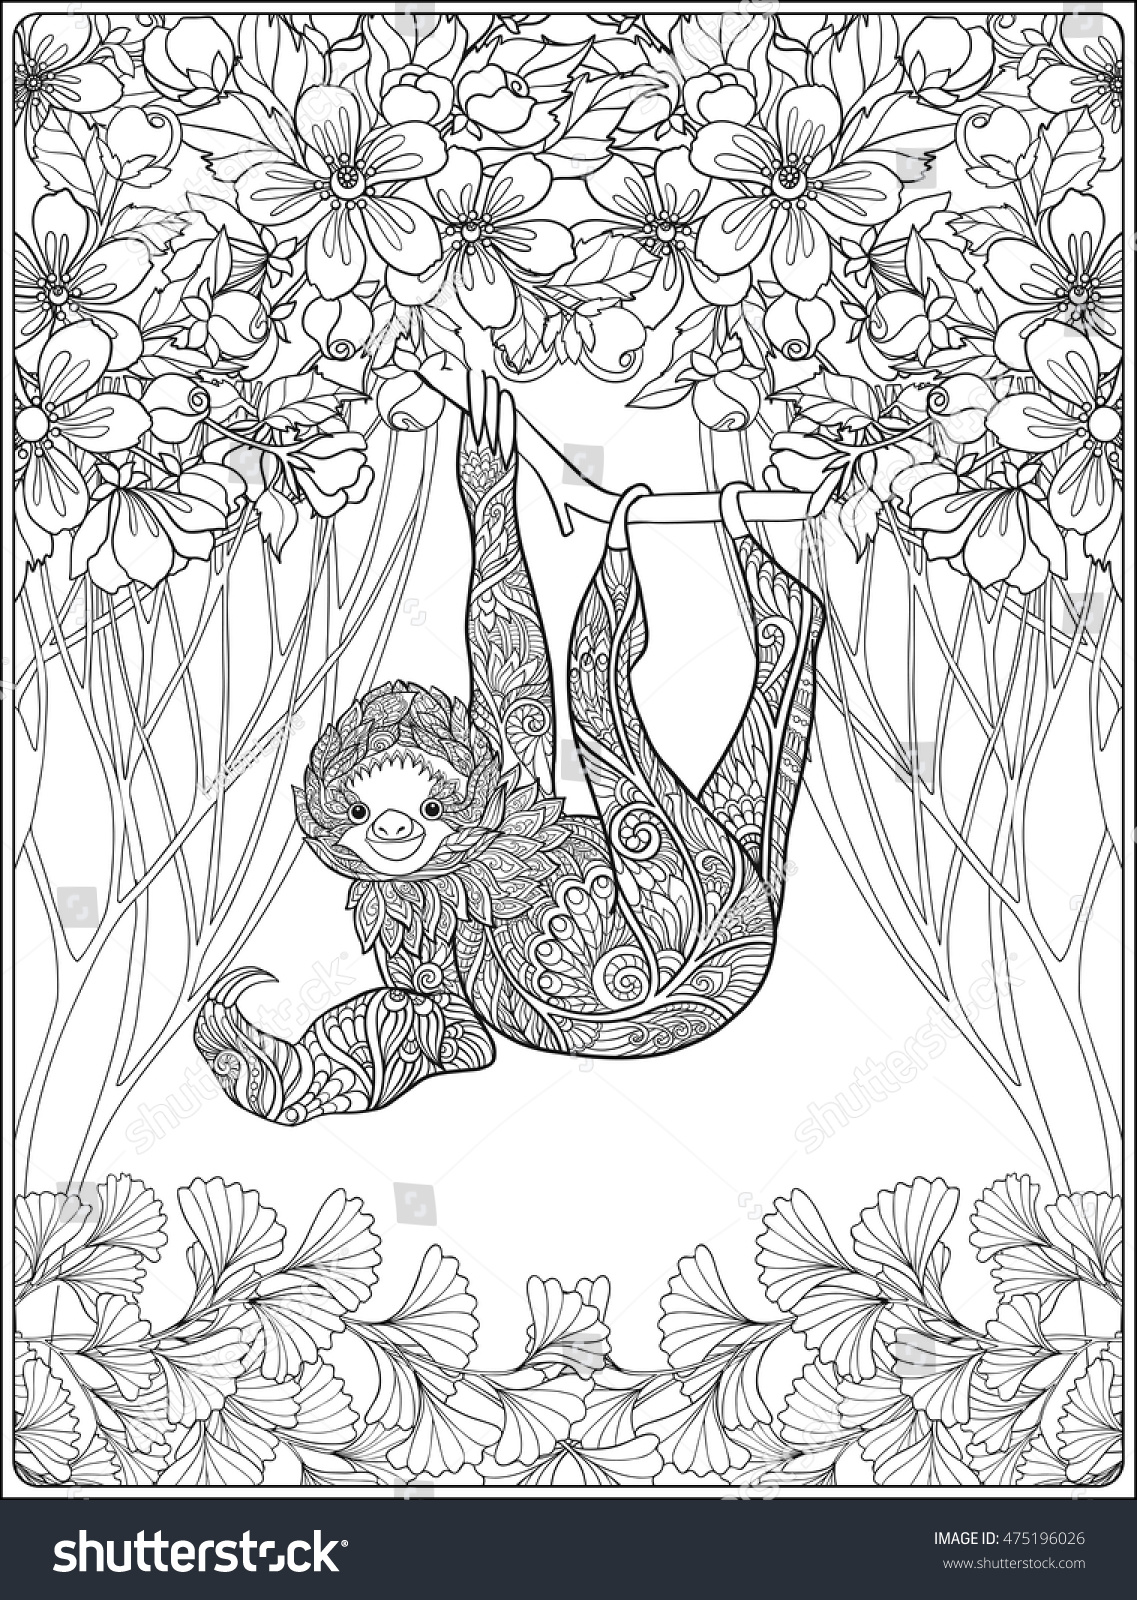 Coloring Page Lovely Sloth Forest Coloring Stock Vector (Royalty ...